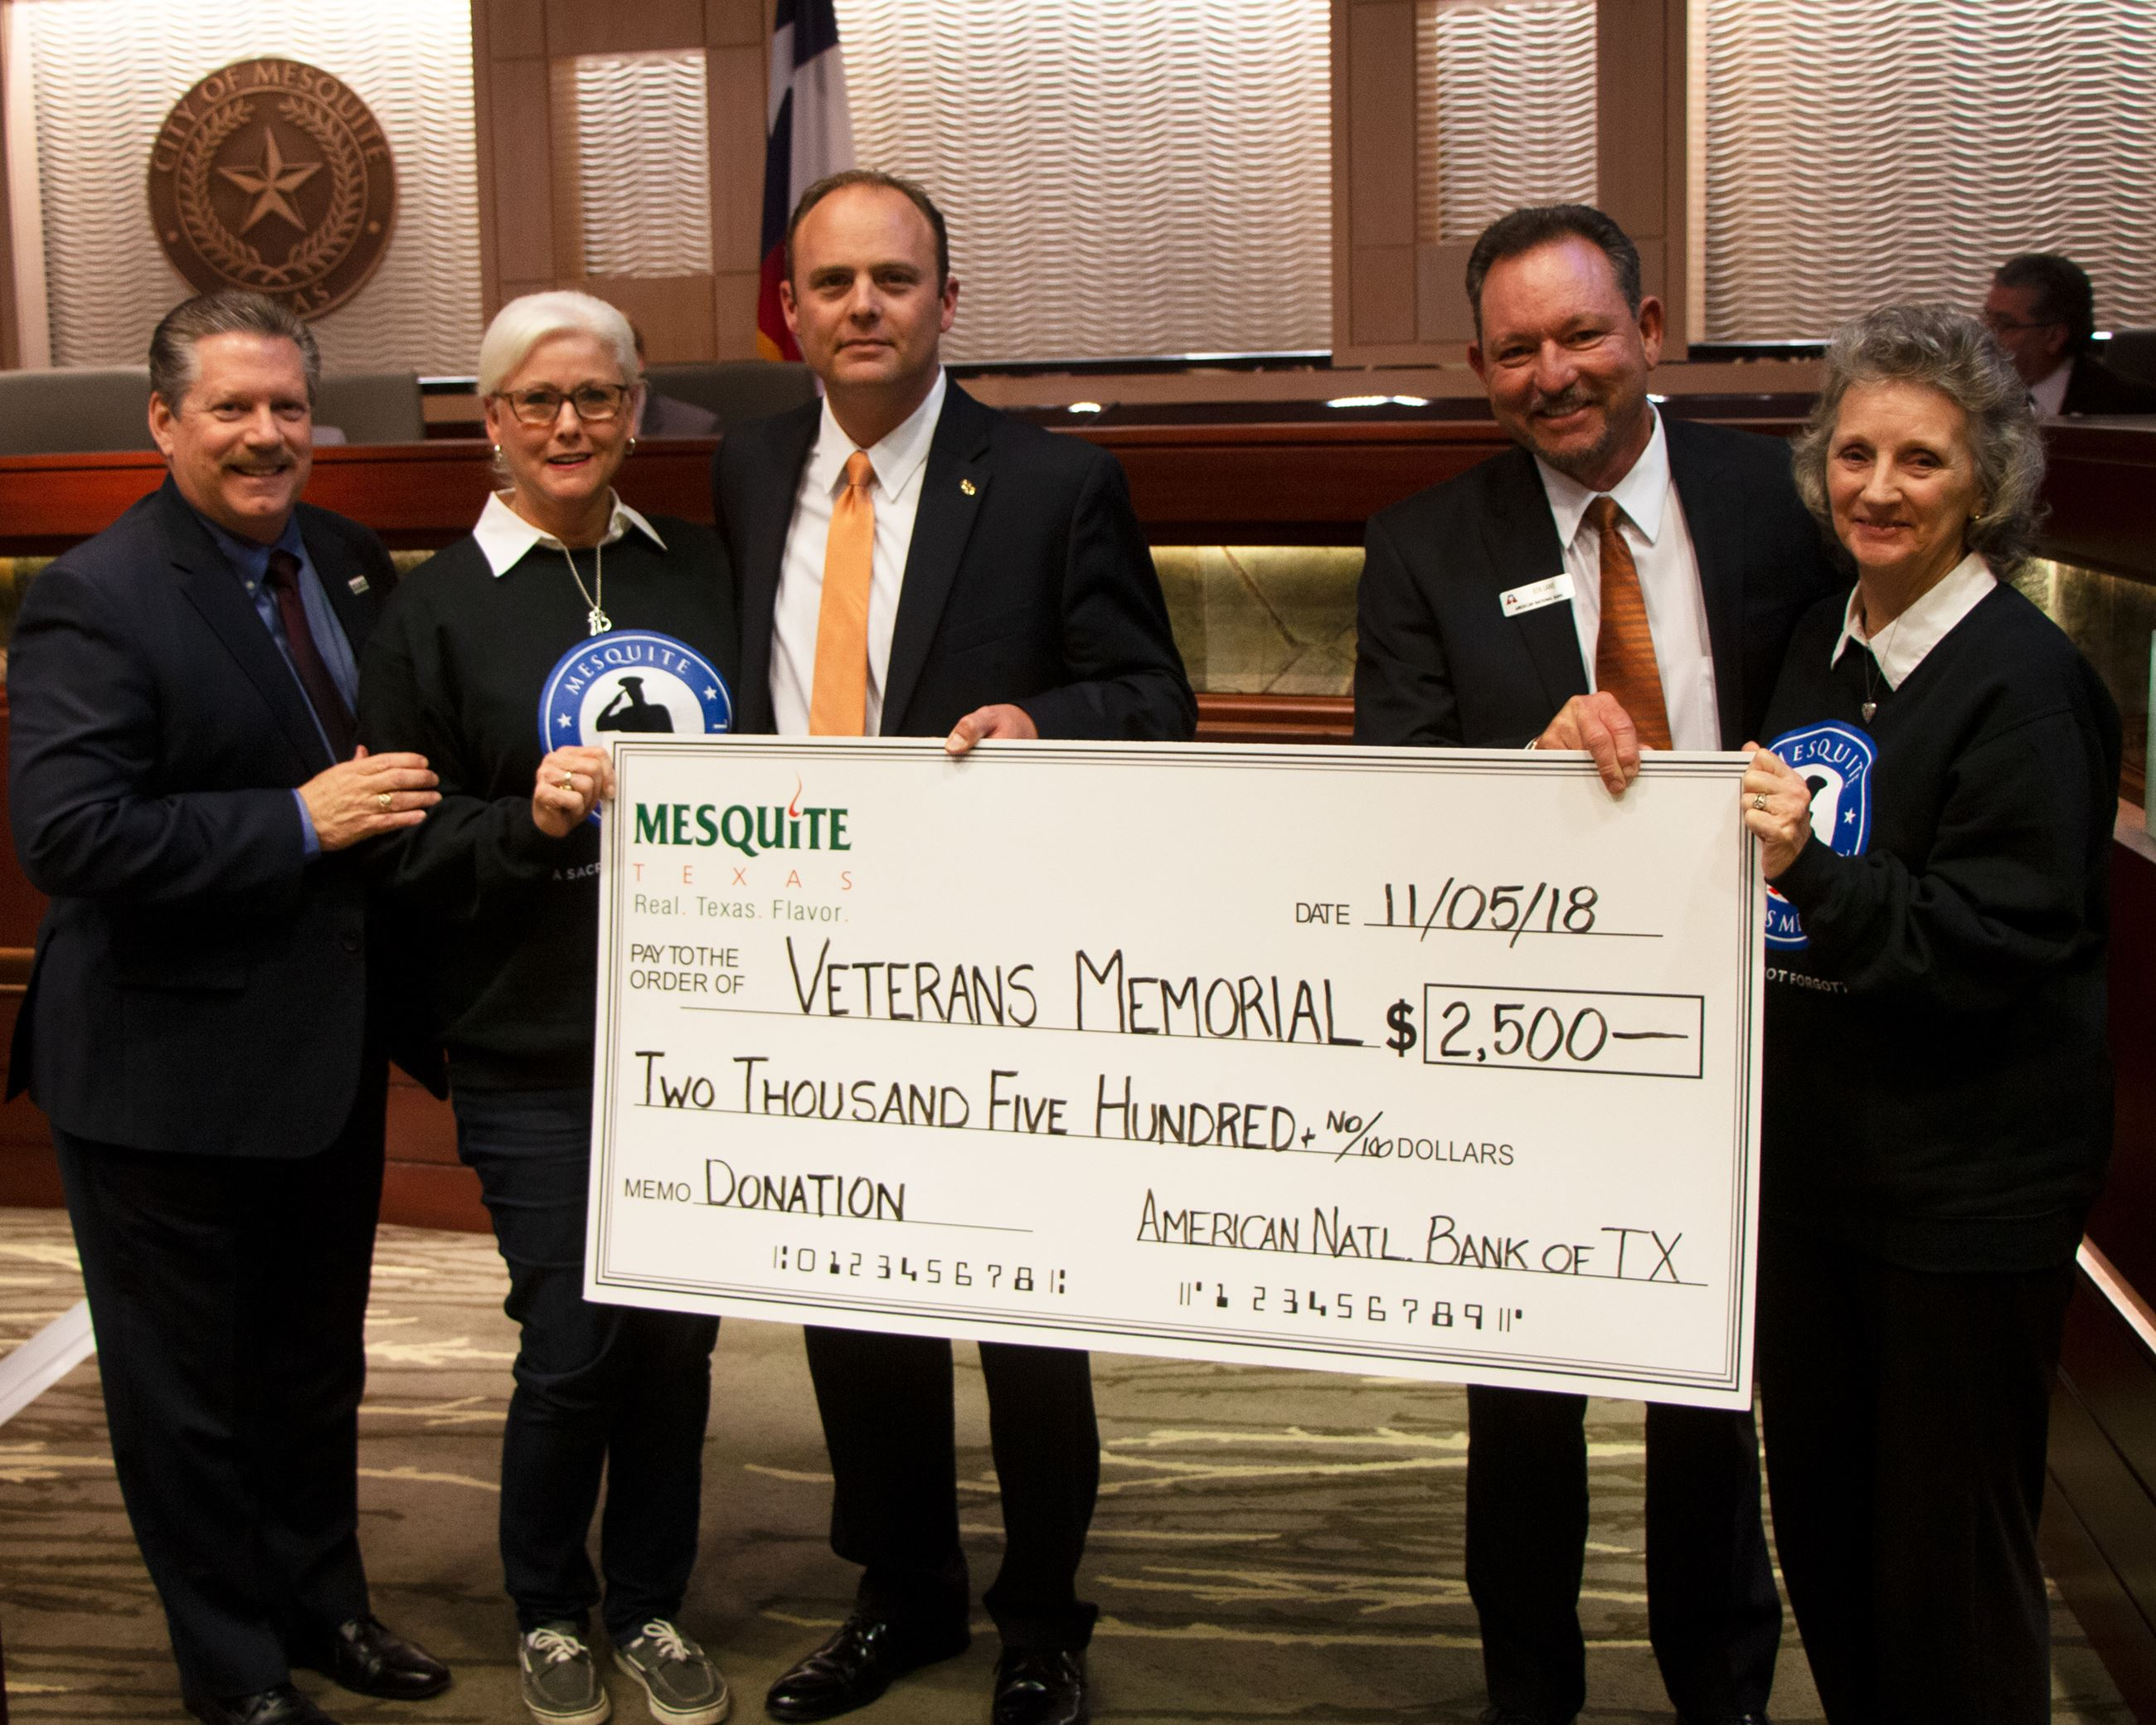 11-5-18 Council Photos - American National Bank of Texas Donation to Veterans Memorial